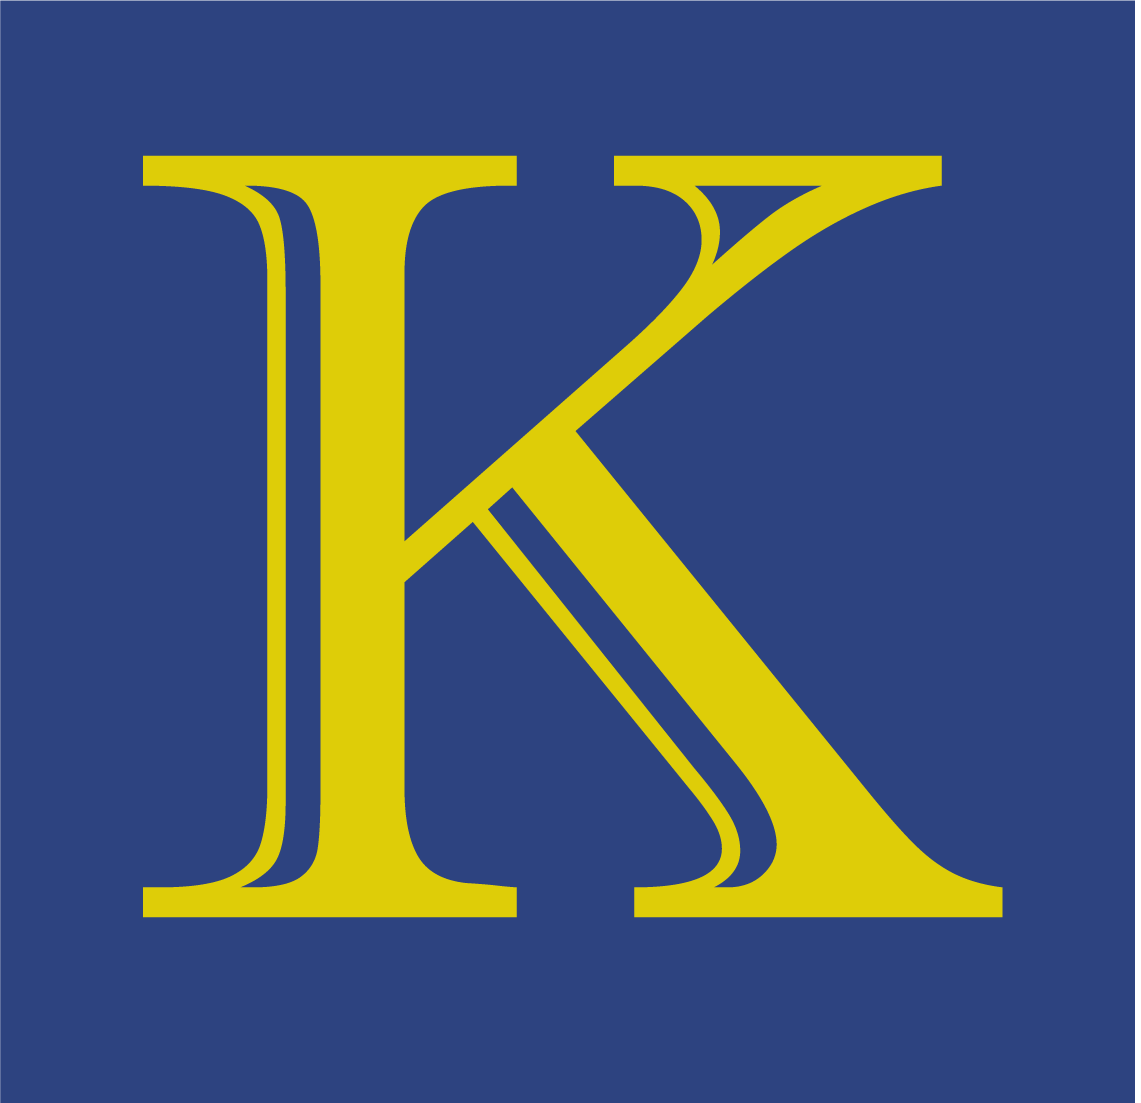 K LOGO KOSTIV & ASSOCIATES P.C. ATTORNEYS AT LAW LOS ANGELES